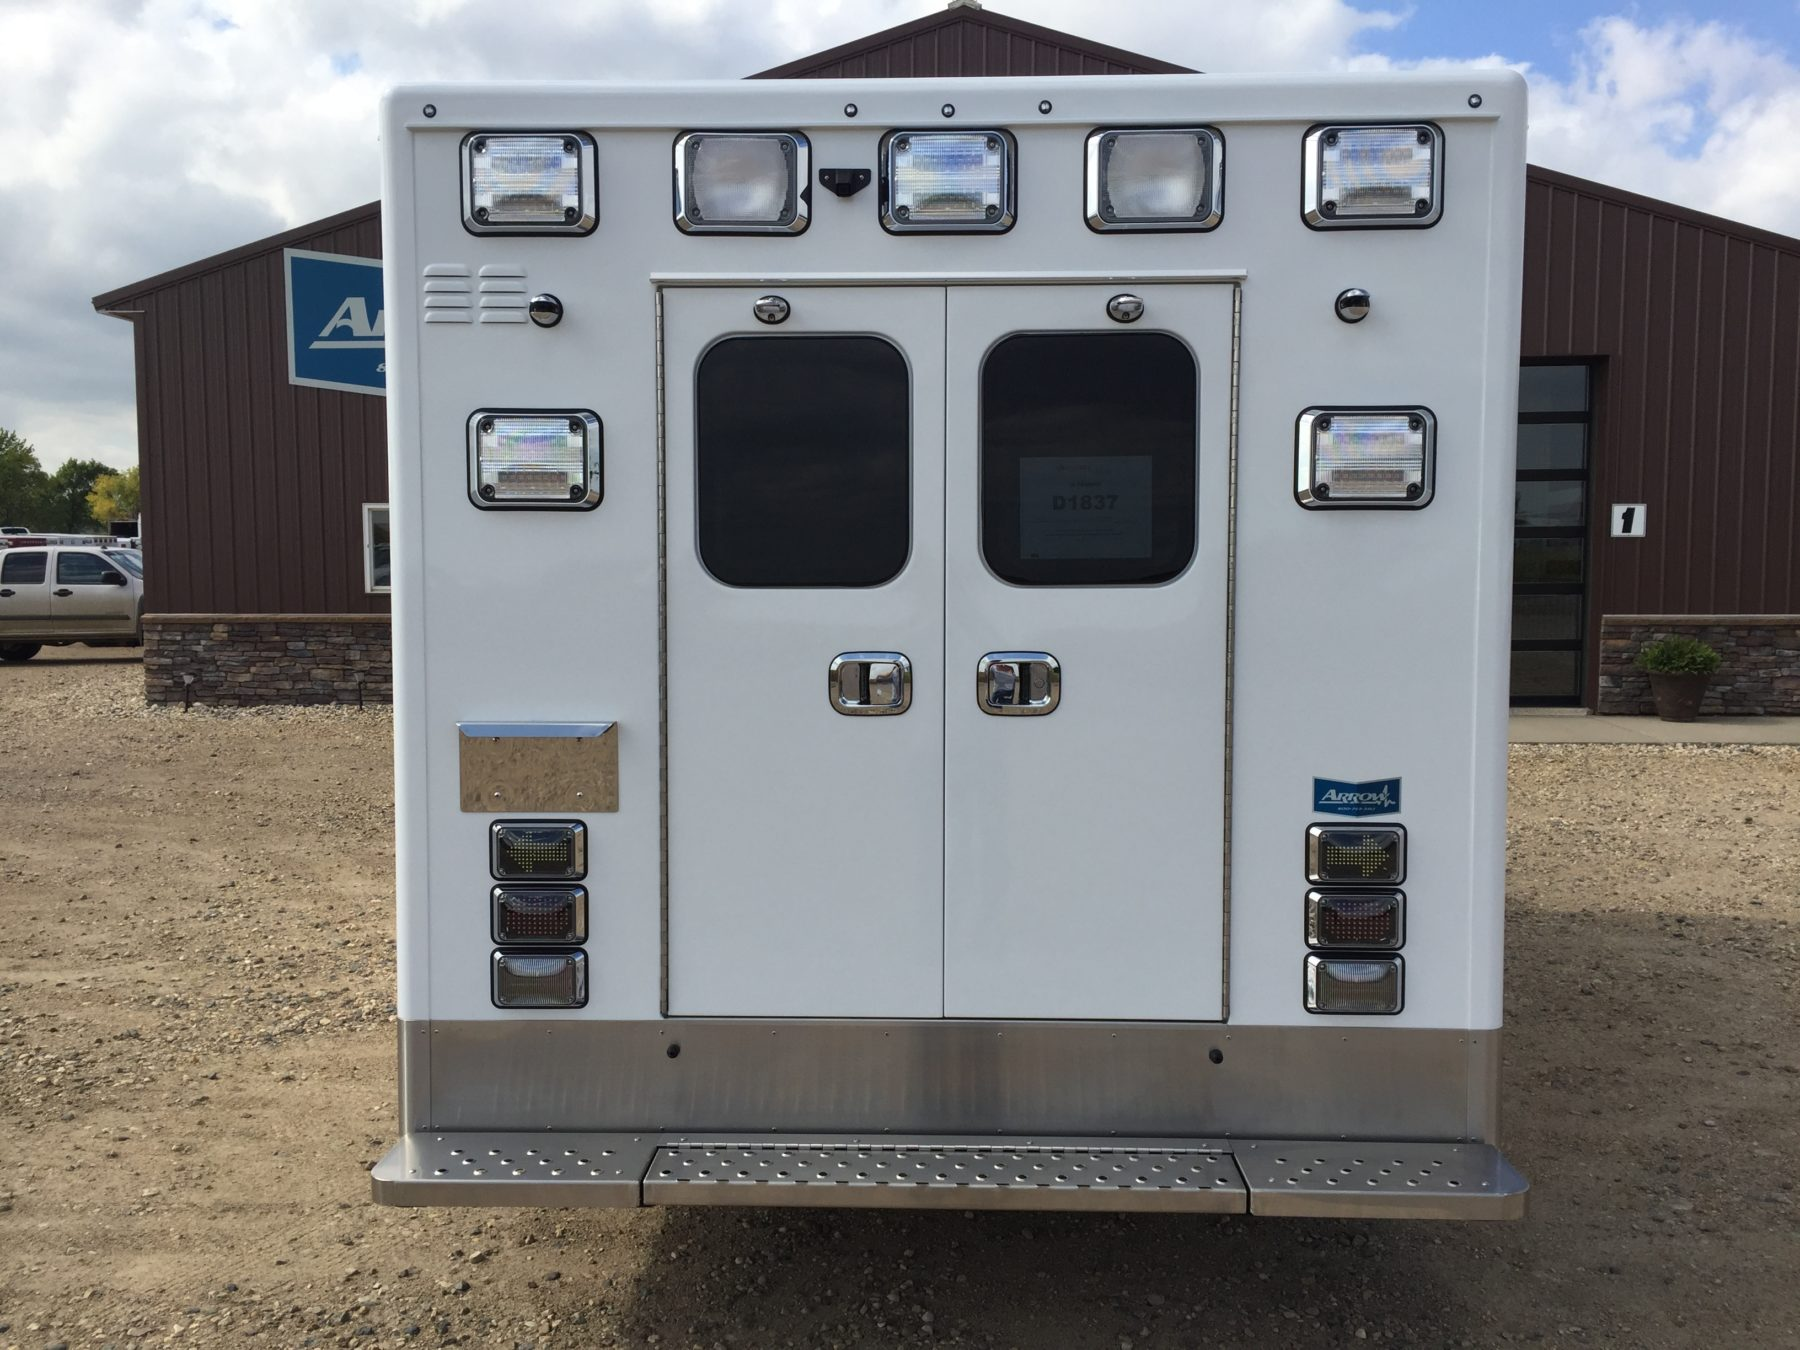 2019 Chevrolet G4500 Type 3 Ambulance For Sale – Picture 8